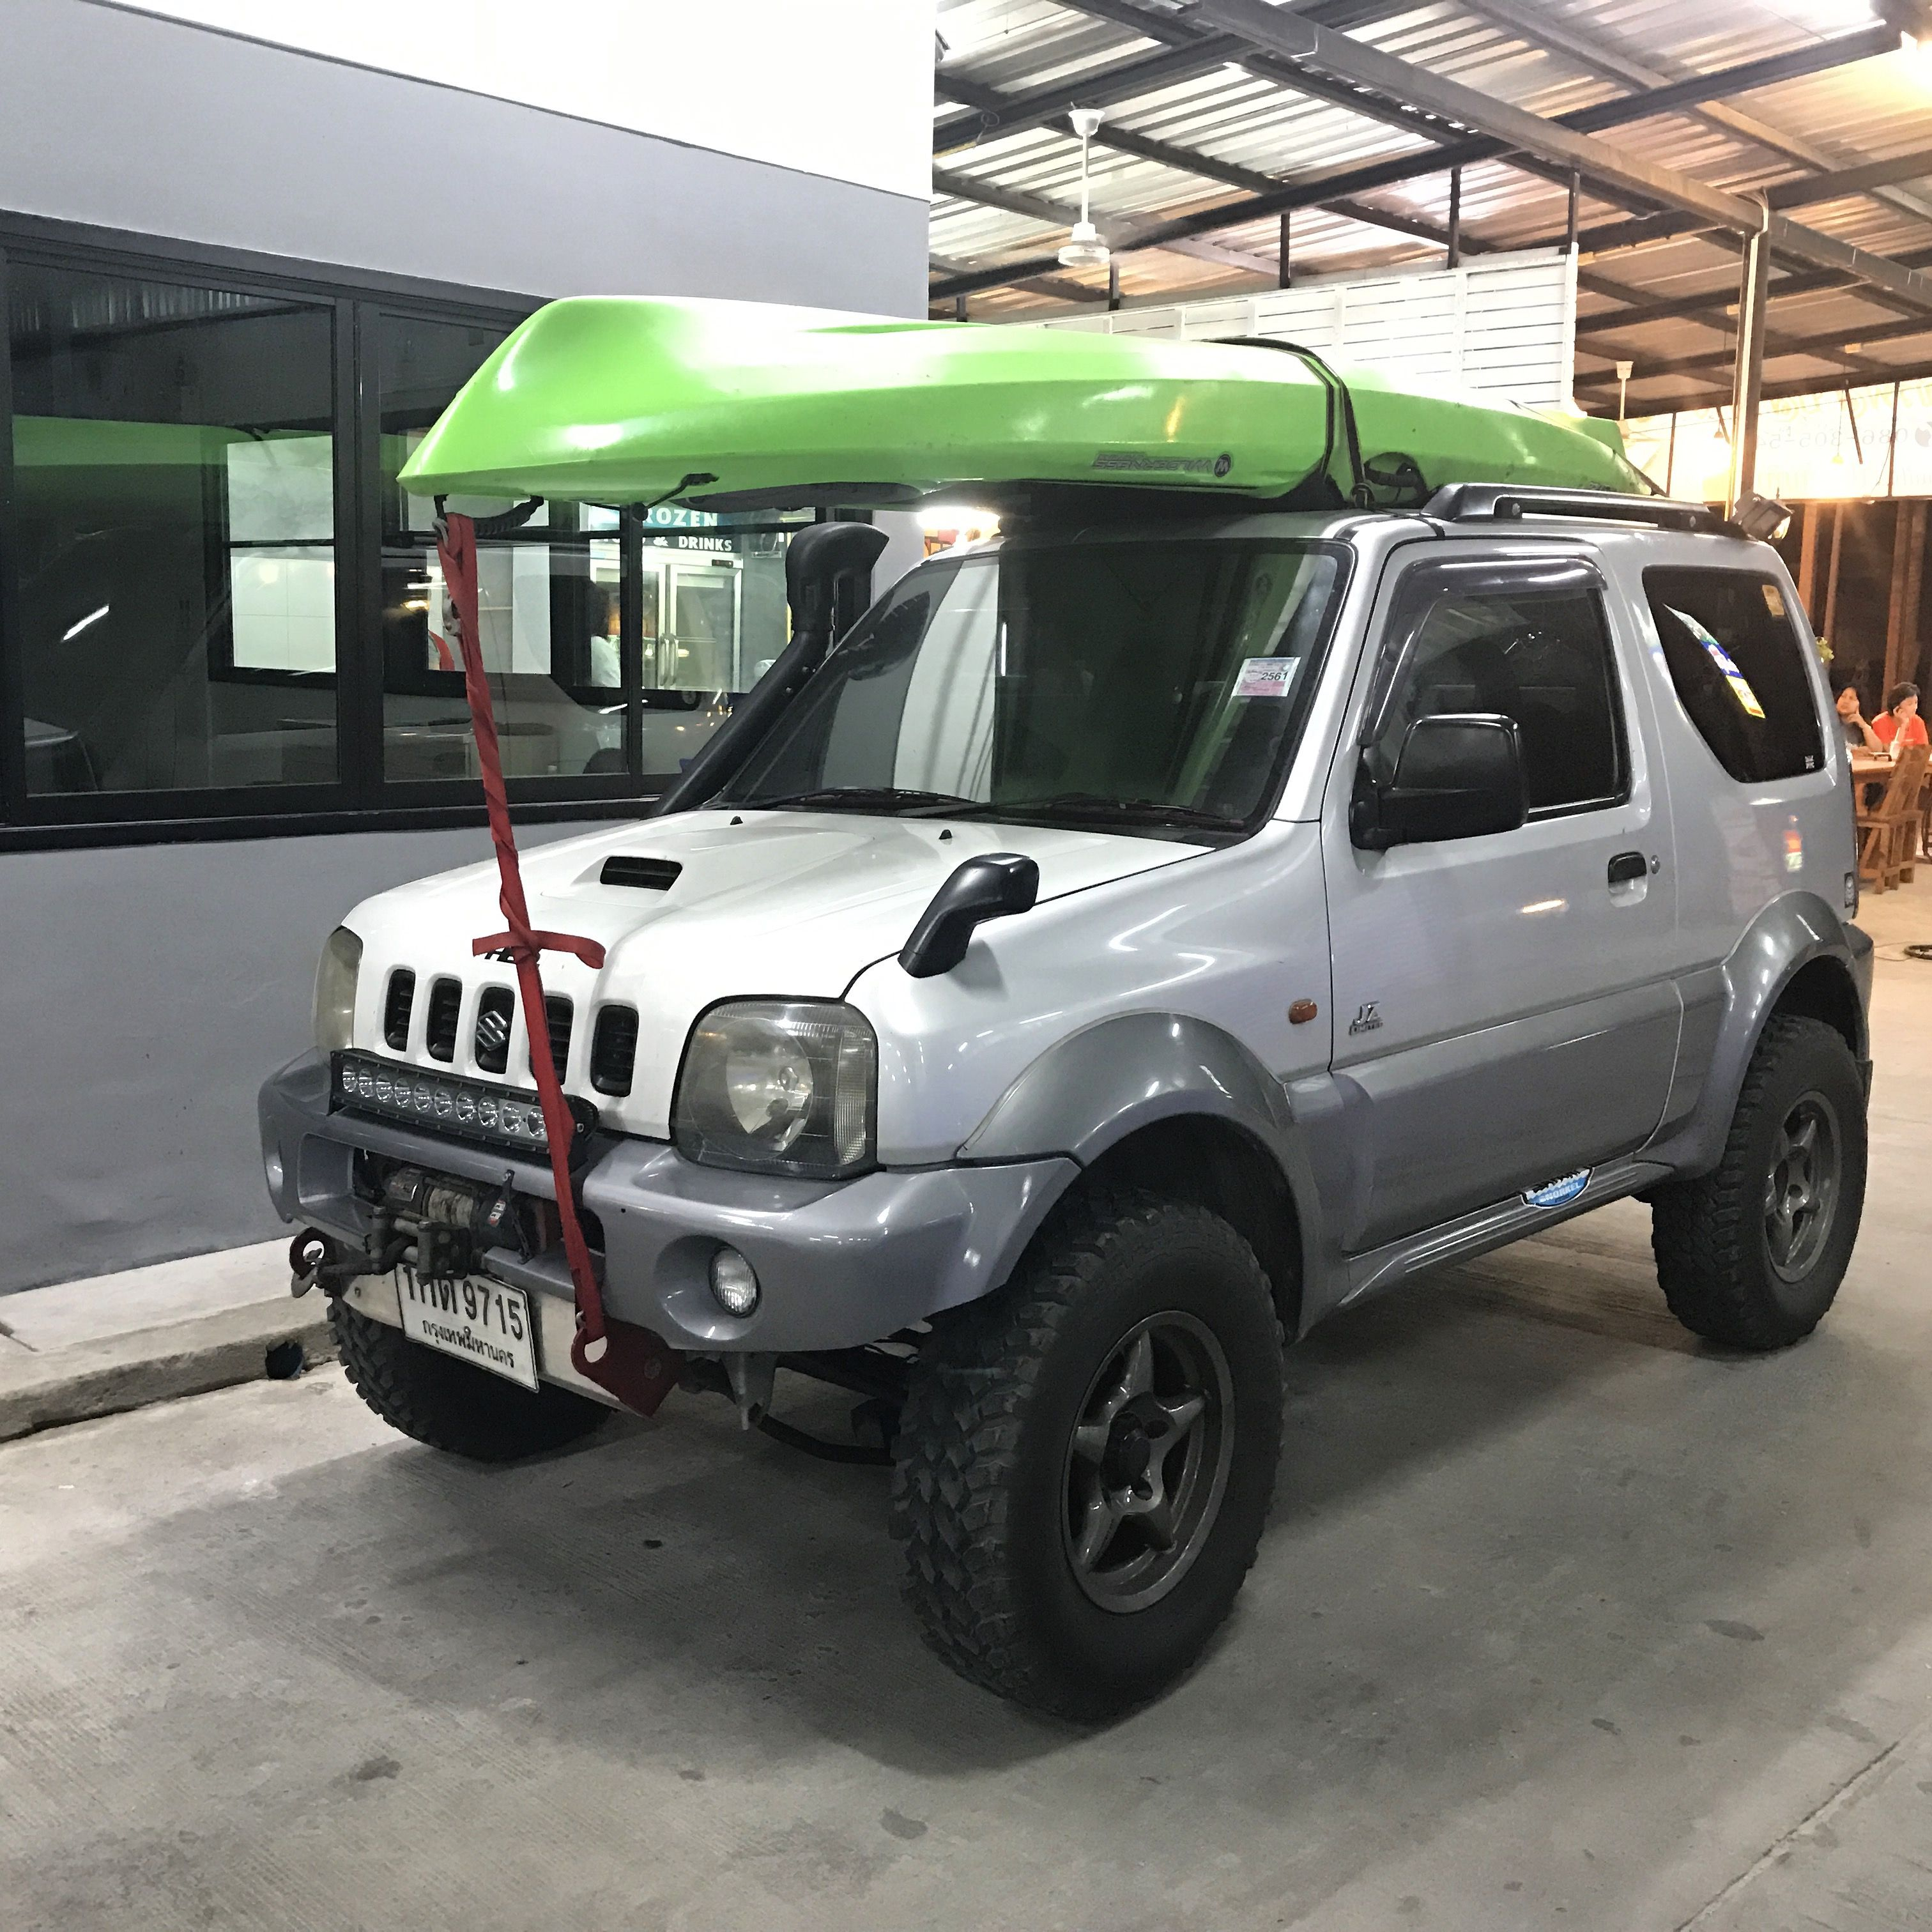 Suzuki jimny 4x4 offroad samurai ideas world